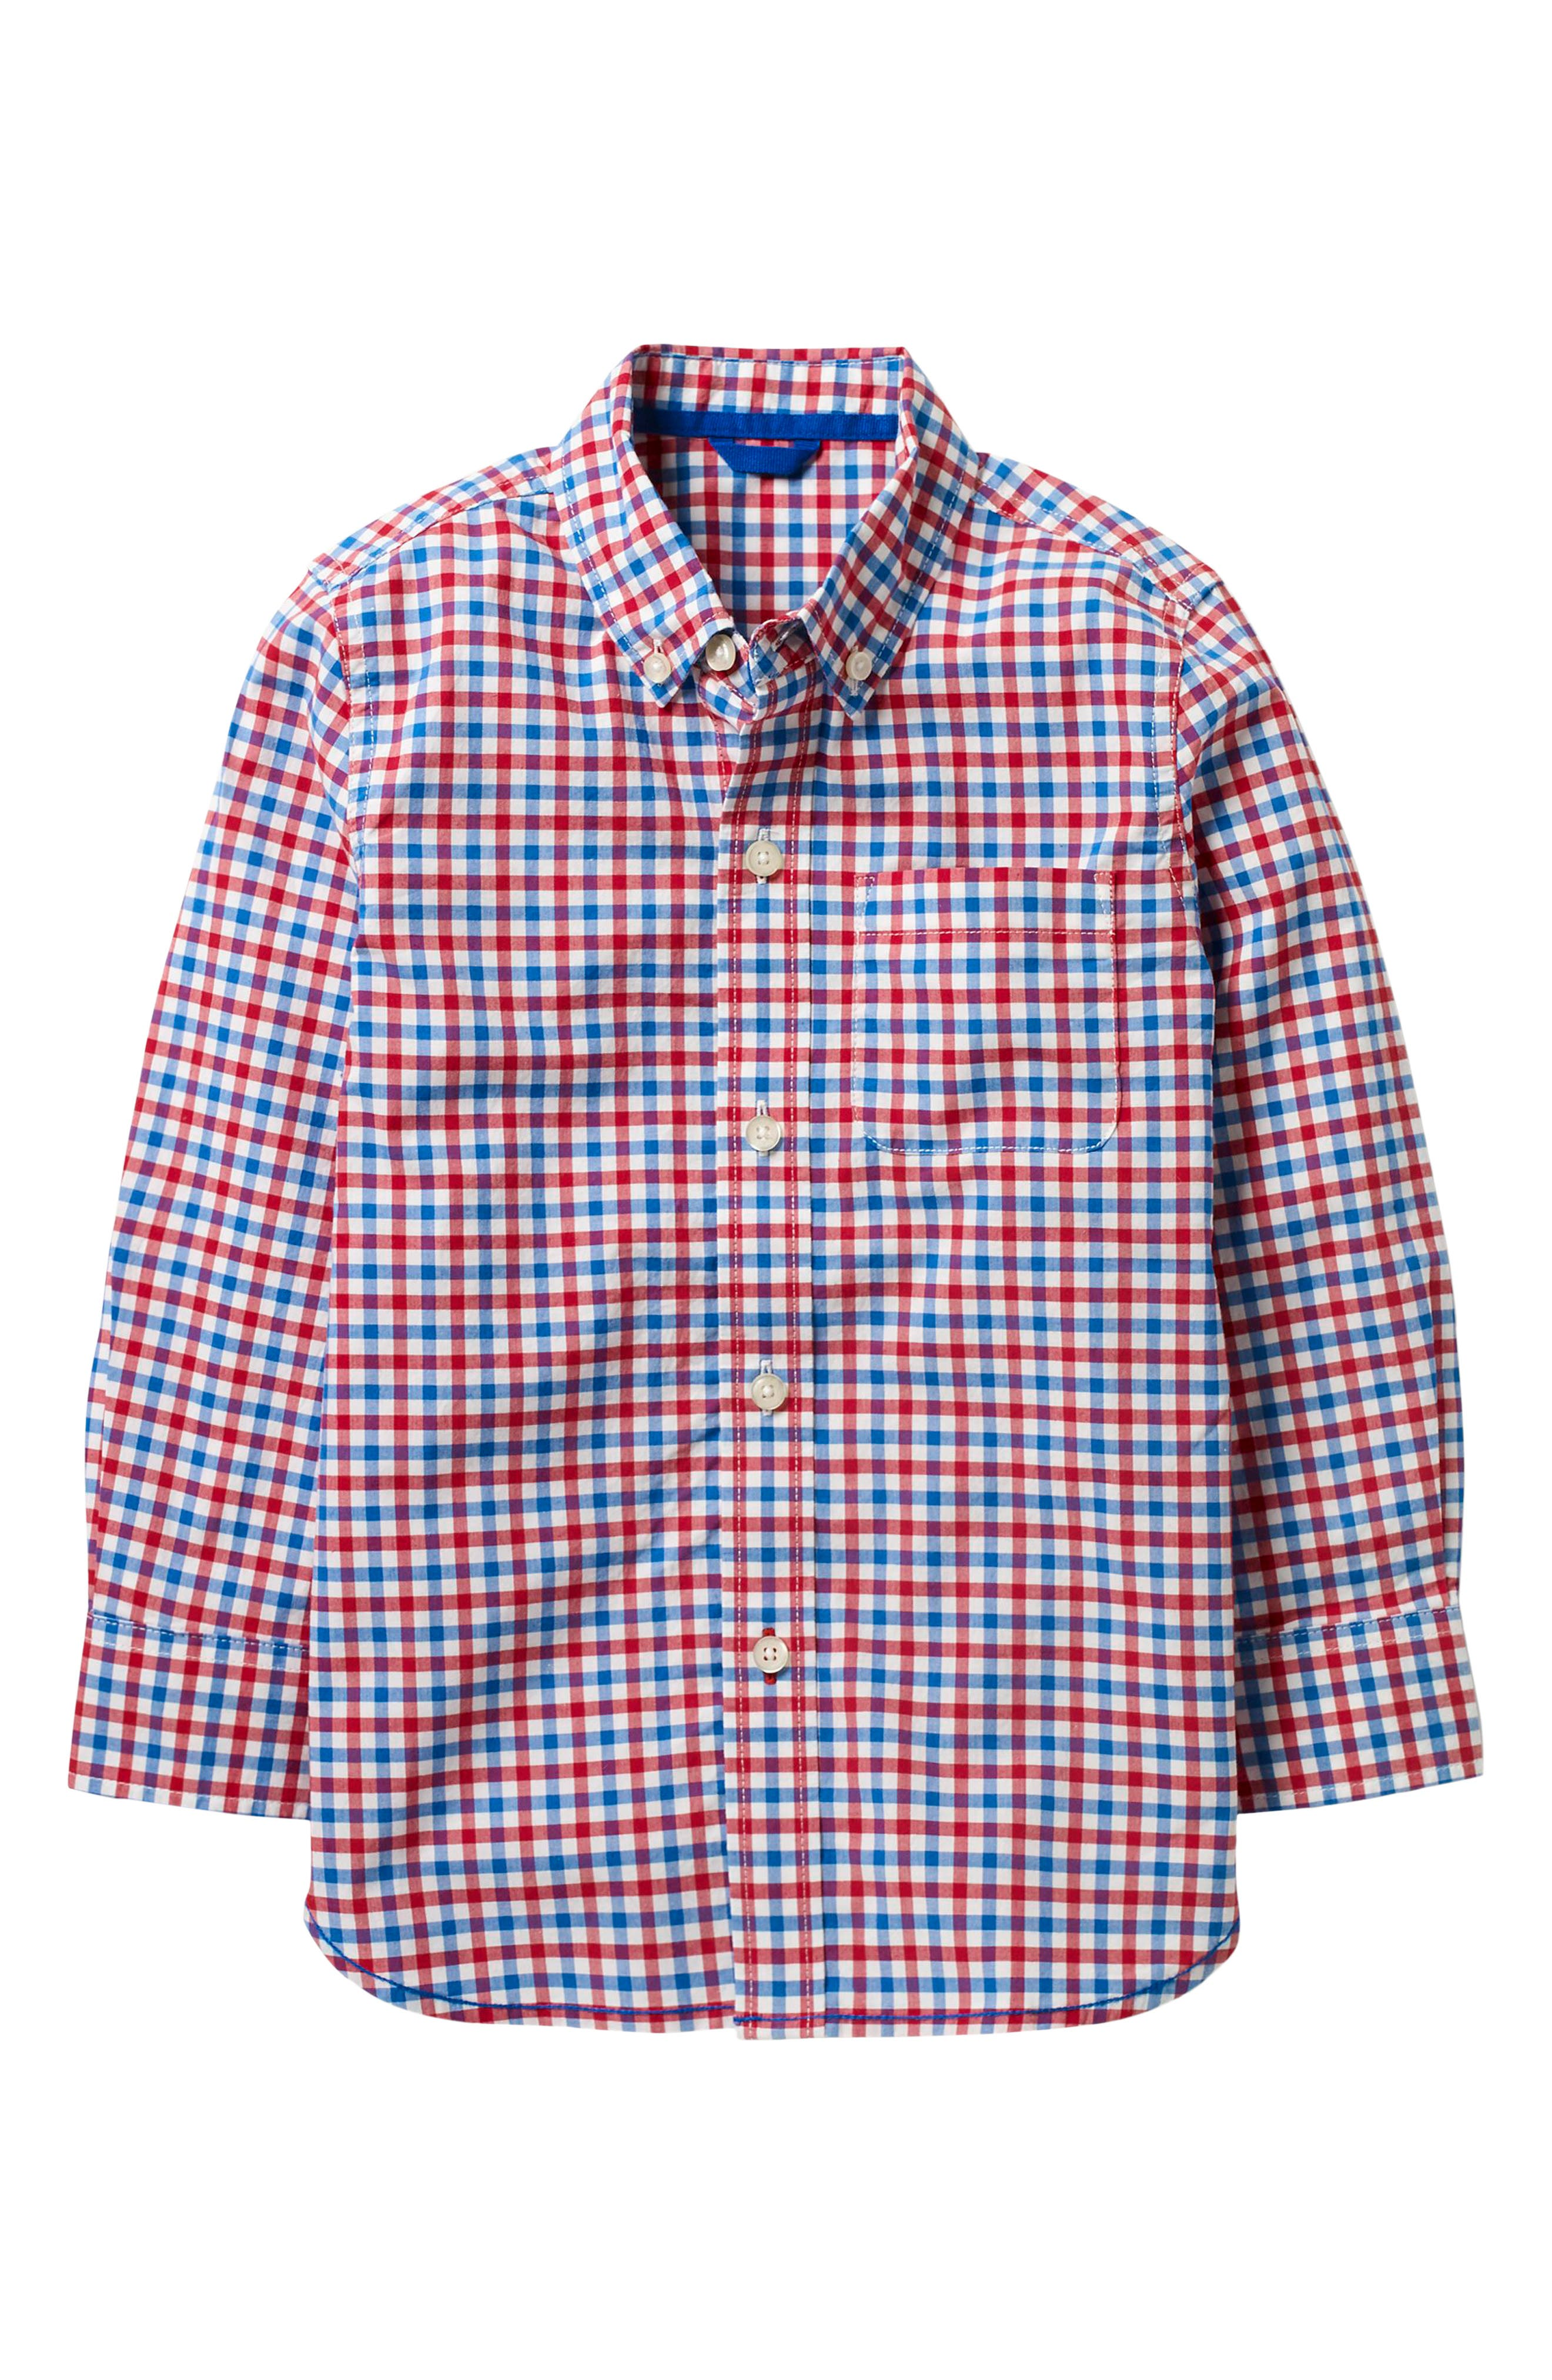 Laundered Gingham Woven Shirt,                             Main thumbnail 1, color,                             600